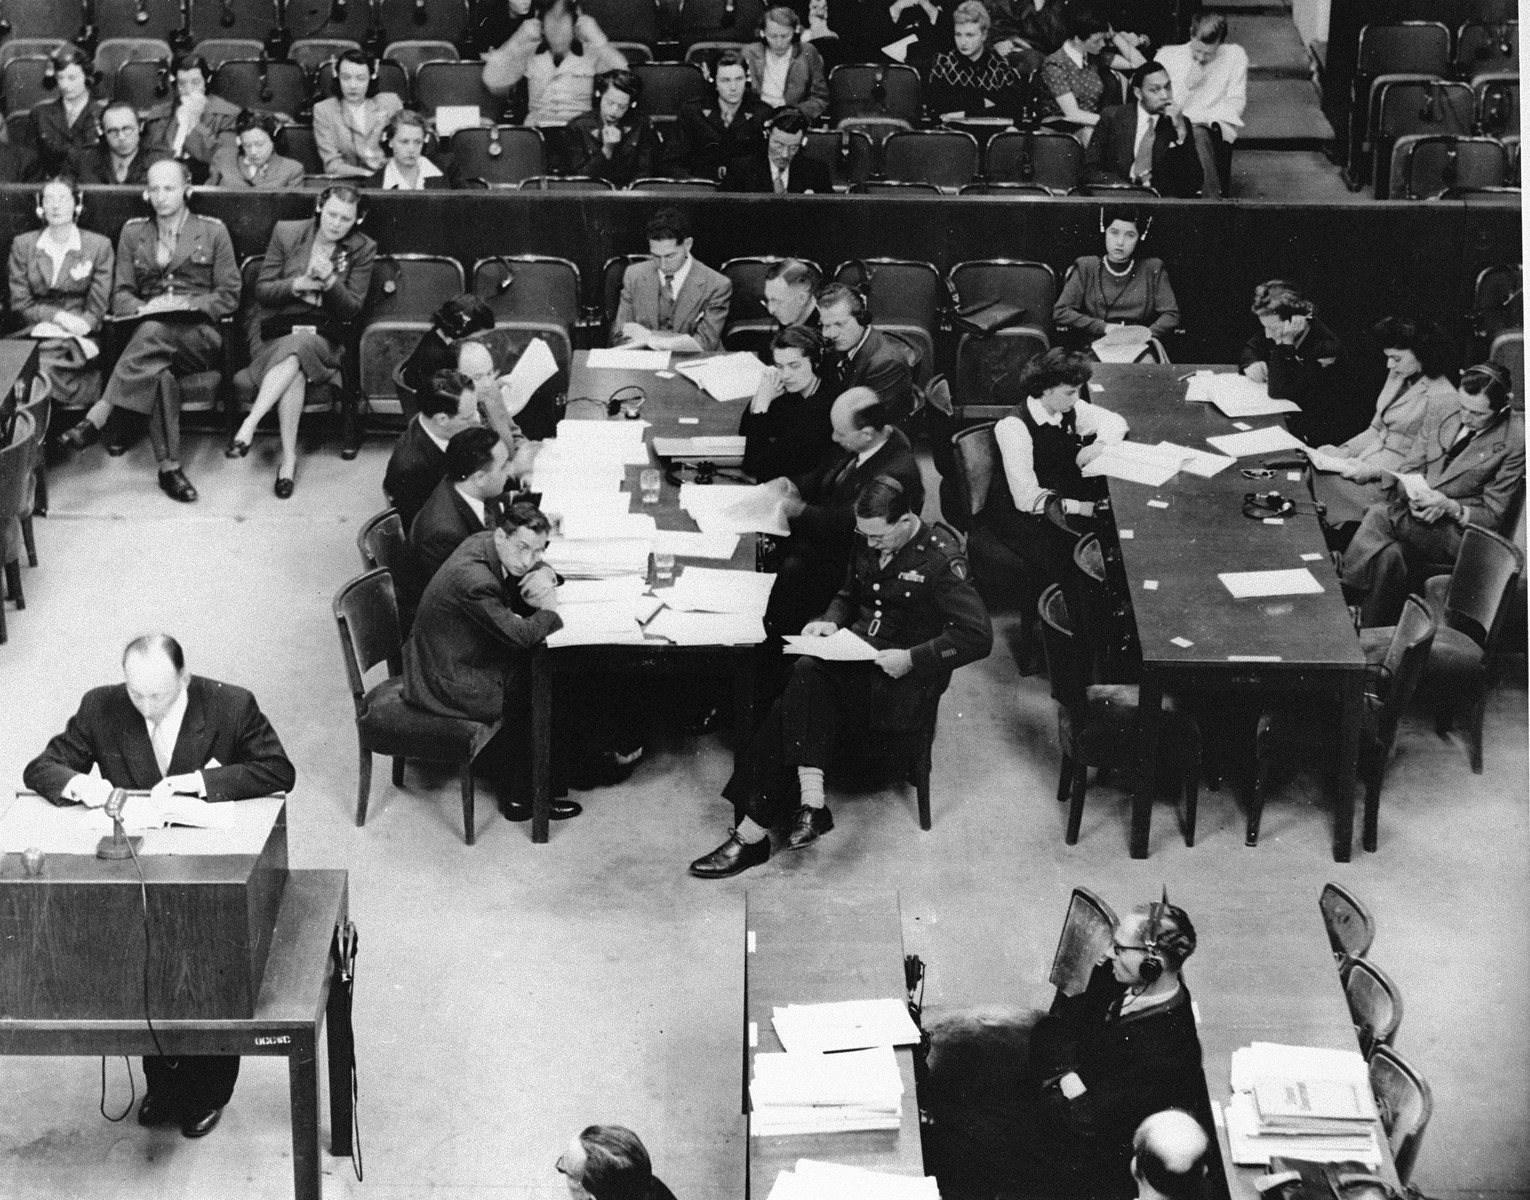 View of the prosecution table at the Medical Case (Doctors') Trial in Nuremberg.